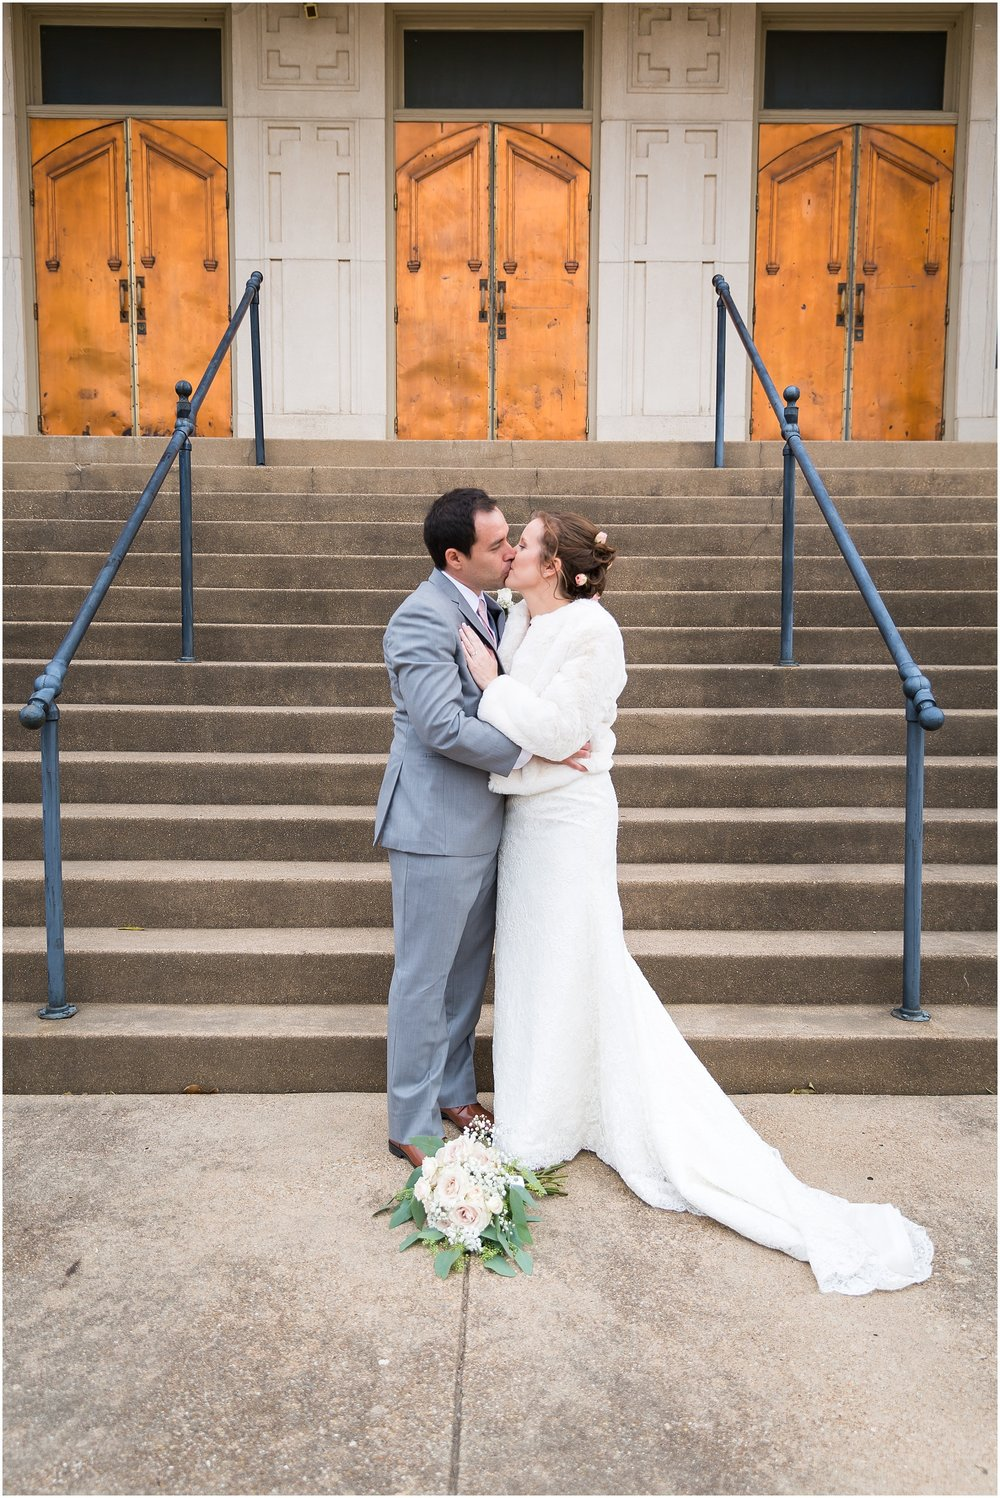 Bride and groom kiss in front of the doors at The Chapel at Meyer Center in Waco, Texas - Jason & Melaina Photography - www.jasonandmelaina.com